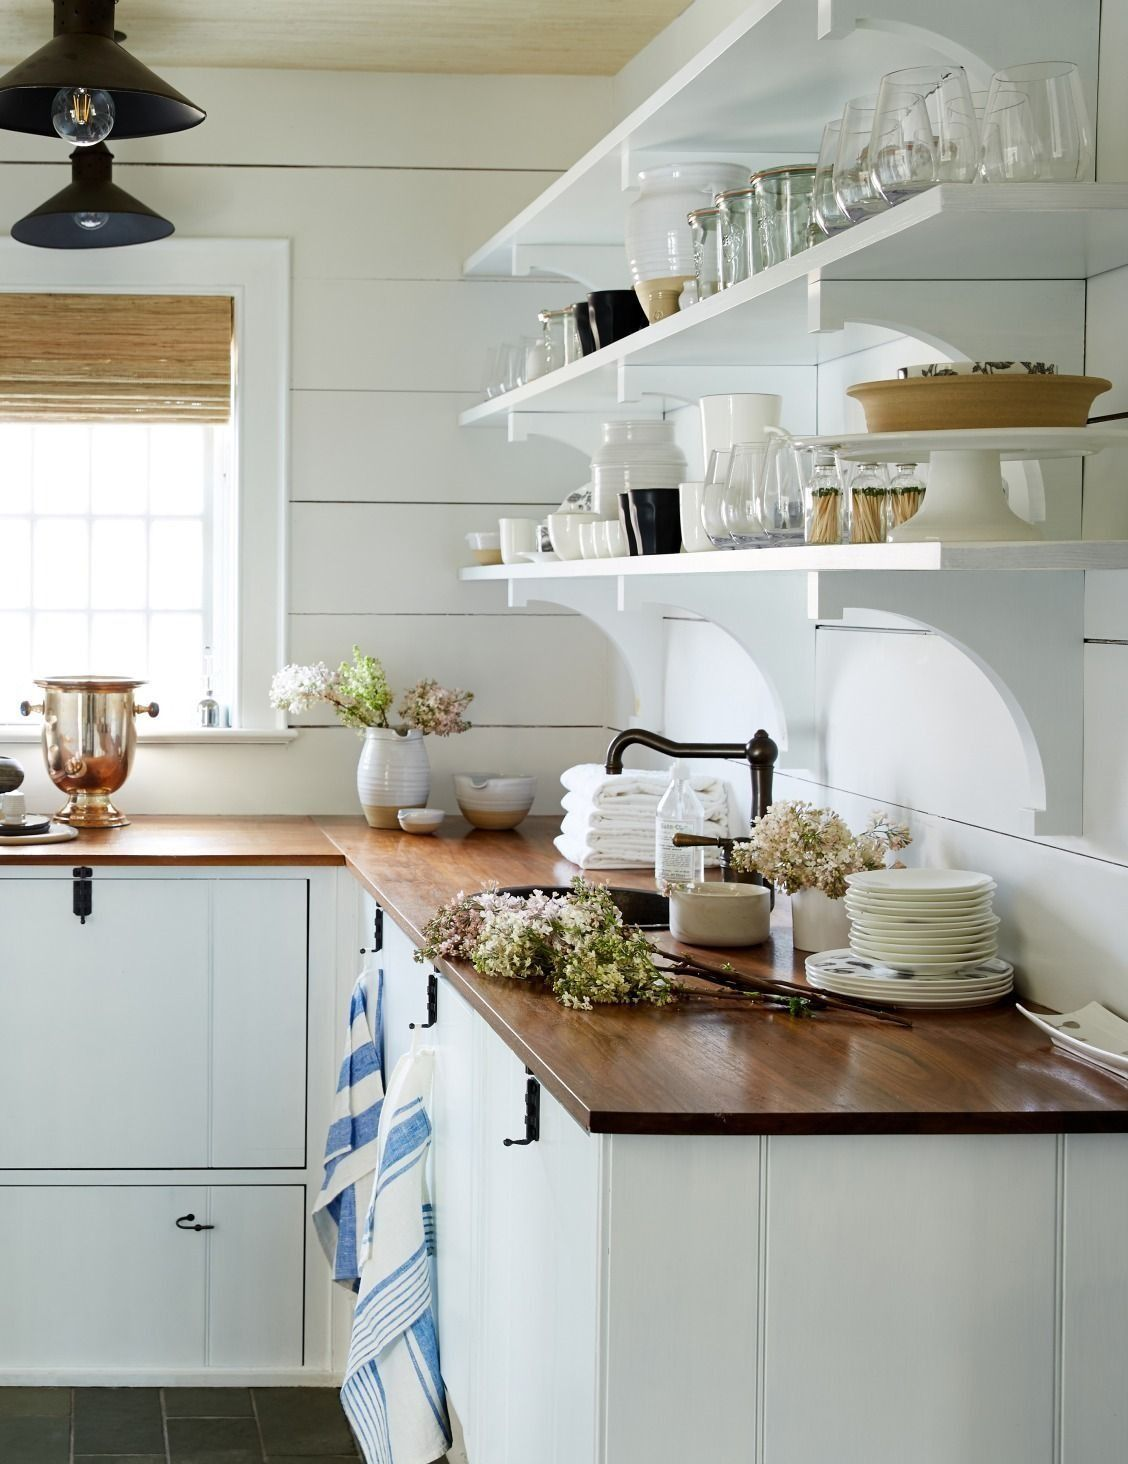 A Paneled Butler S Pantry With Open Shelving Charming Sunken Sink And Butcher Block Countertops Is Chock Full Of Vintage Charm Country Style